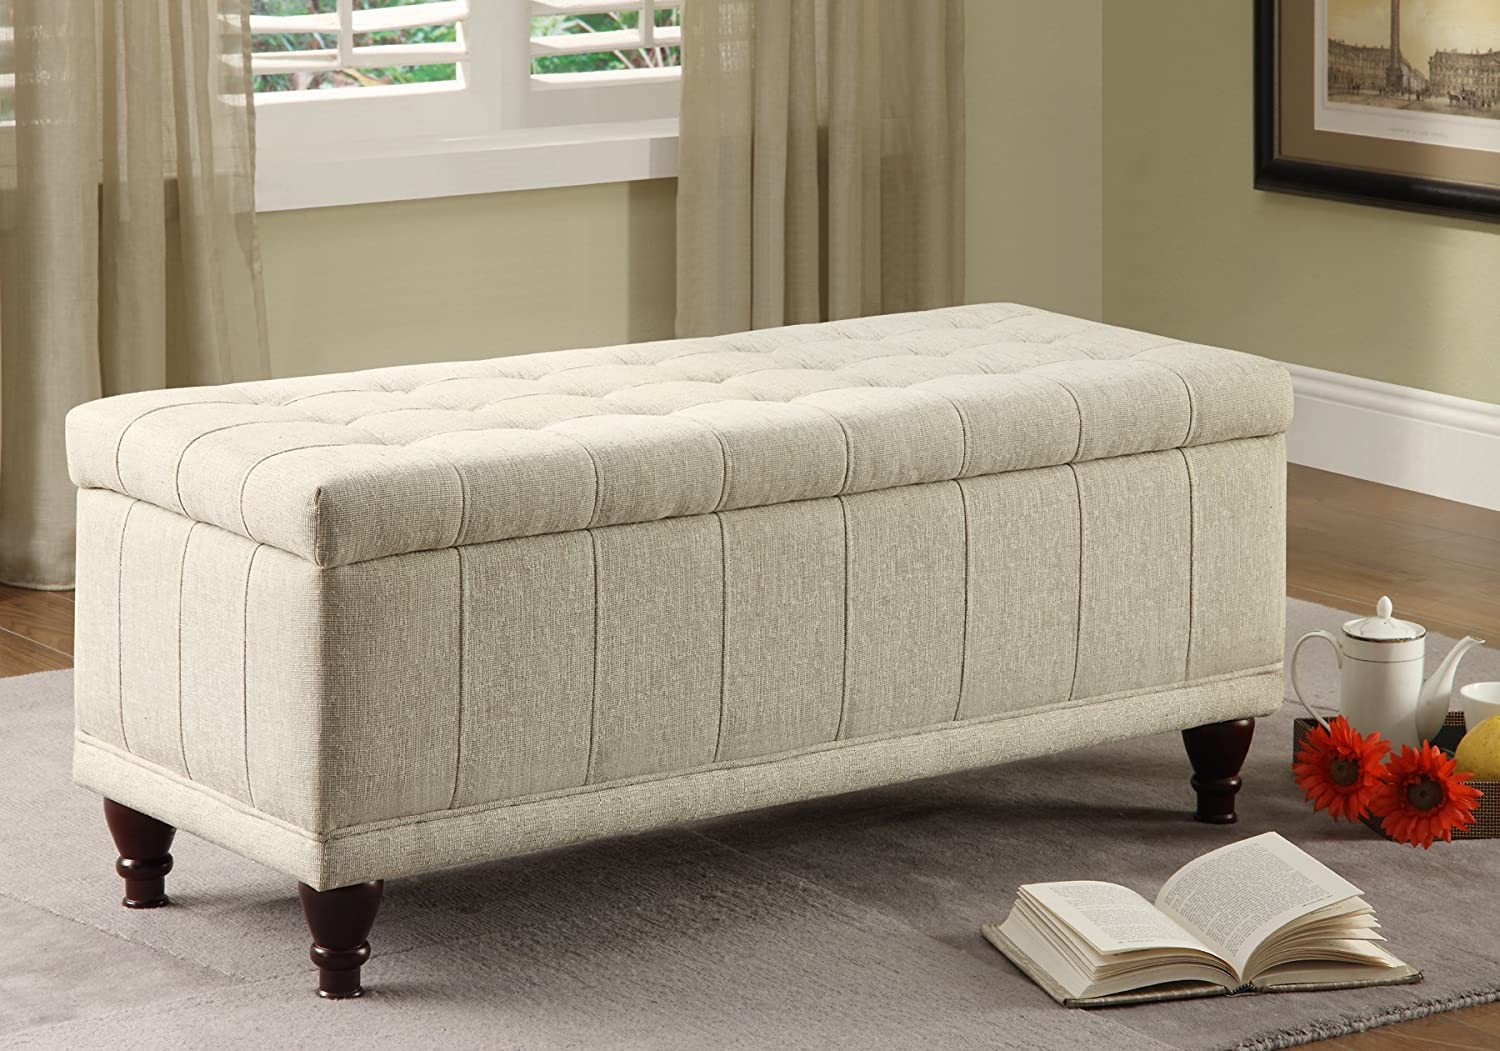 Superieur Amazon.com: Homelegance 4730NF Lift Top Storage Bench With Tufted Accents,  Beige Fabric: Kitchen U0026 Dining